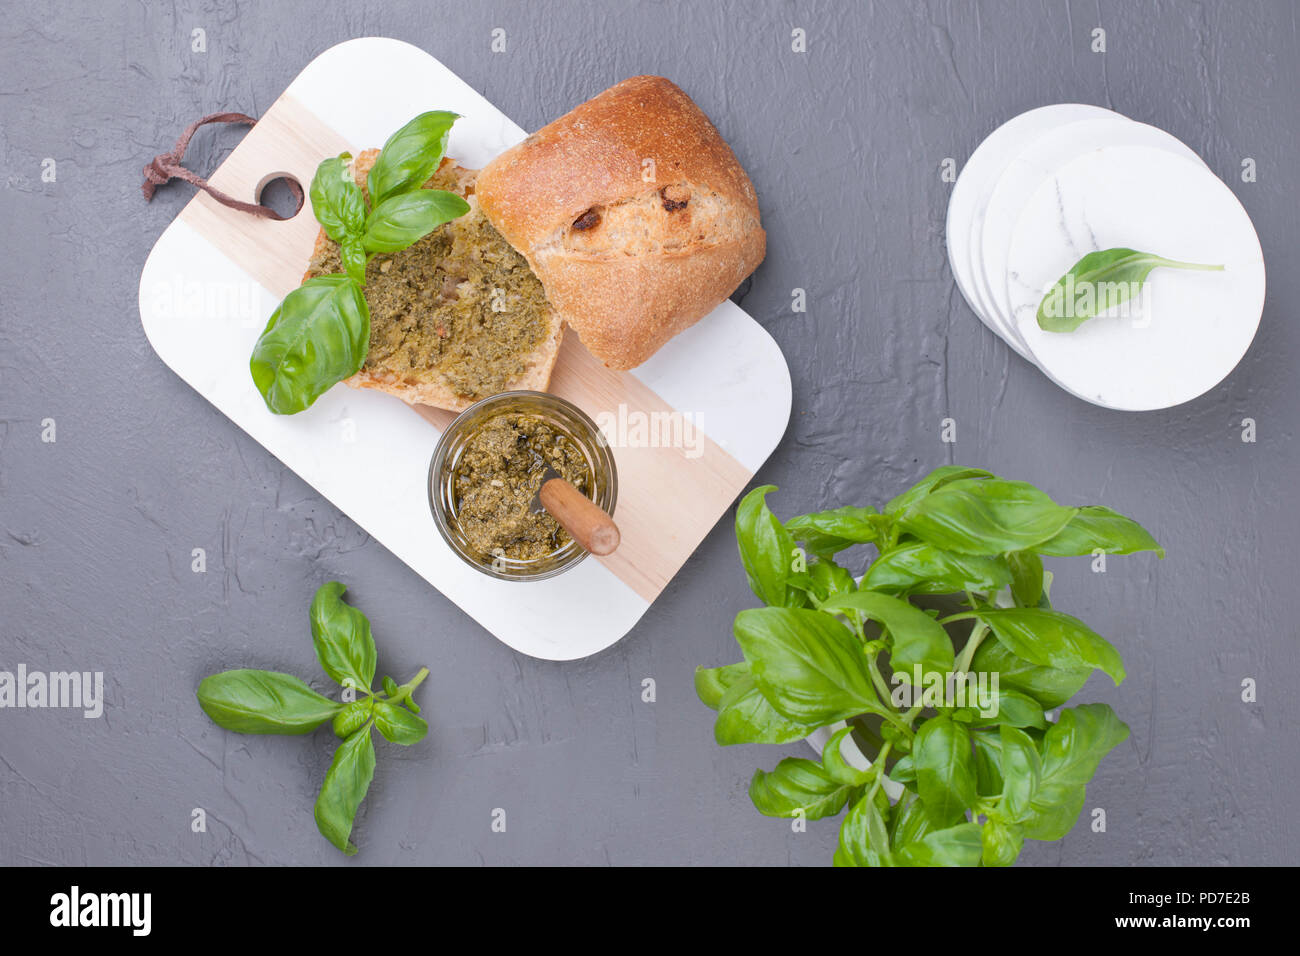 Fresh bread with pesto sauce and green basil on white board. Delicious healthy lunch. Free space for the text. Top view. - Stock Image